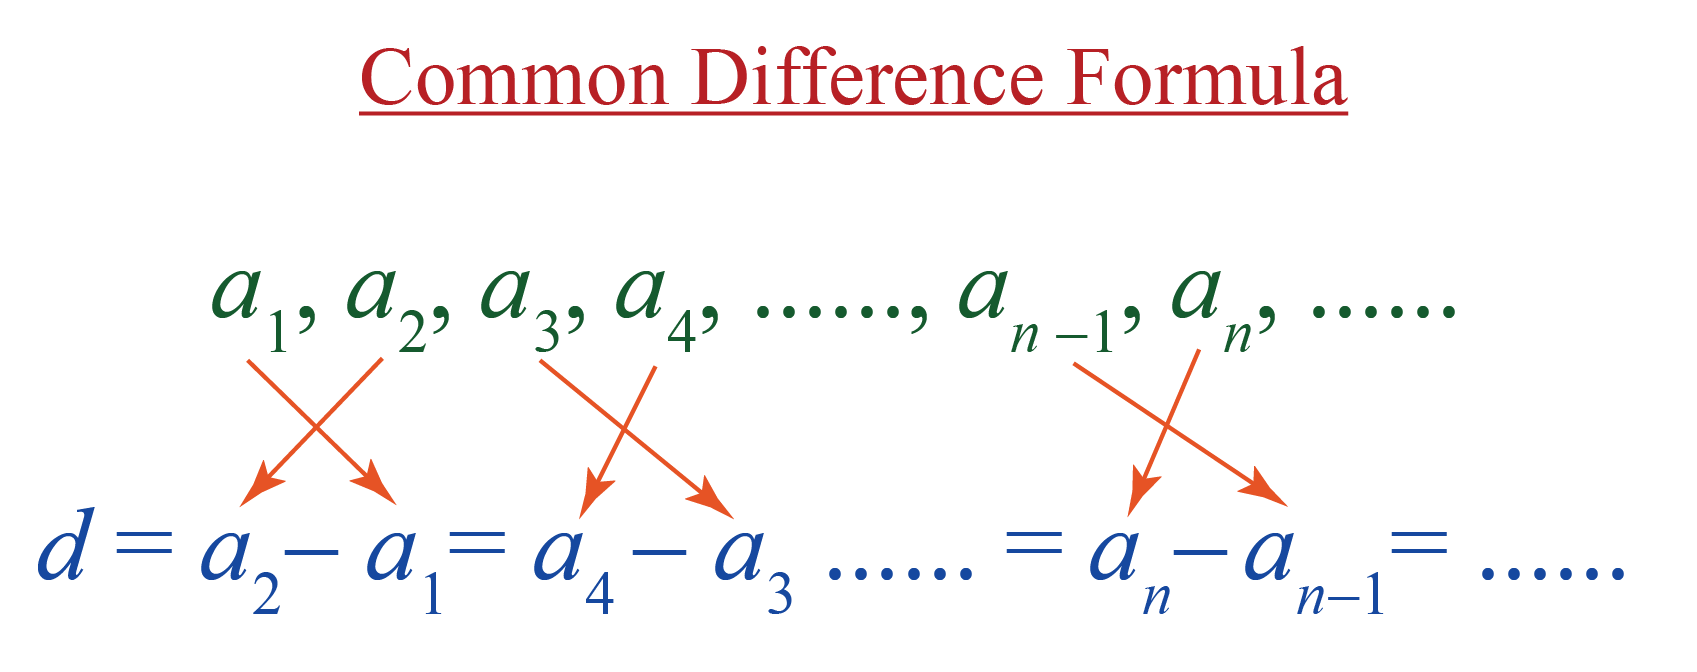 common difference of Arithmetic progression formula is d =a subscript n minus a subscript n minus 1